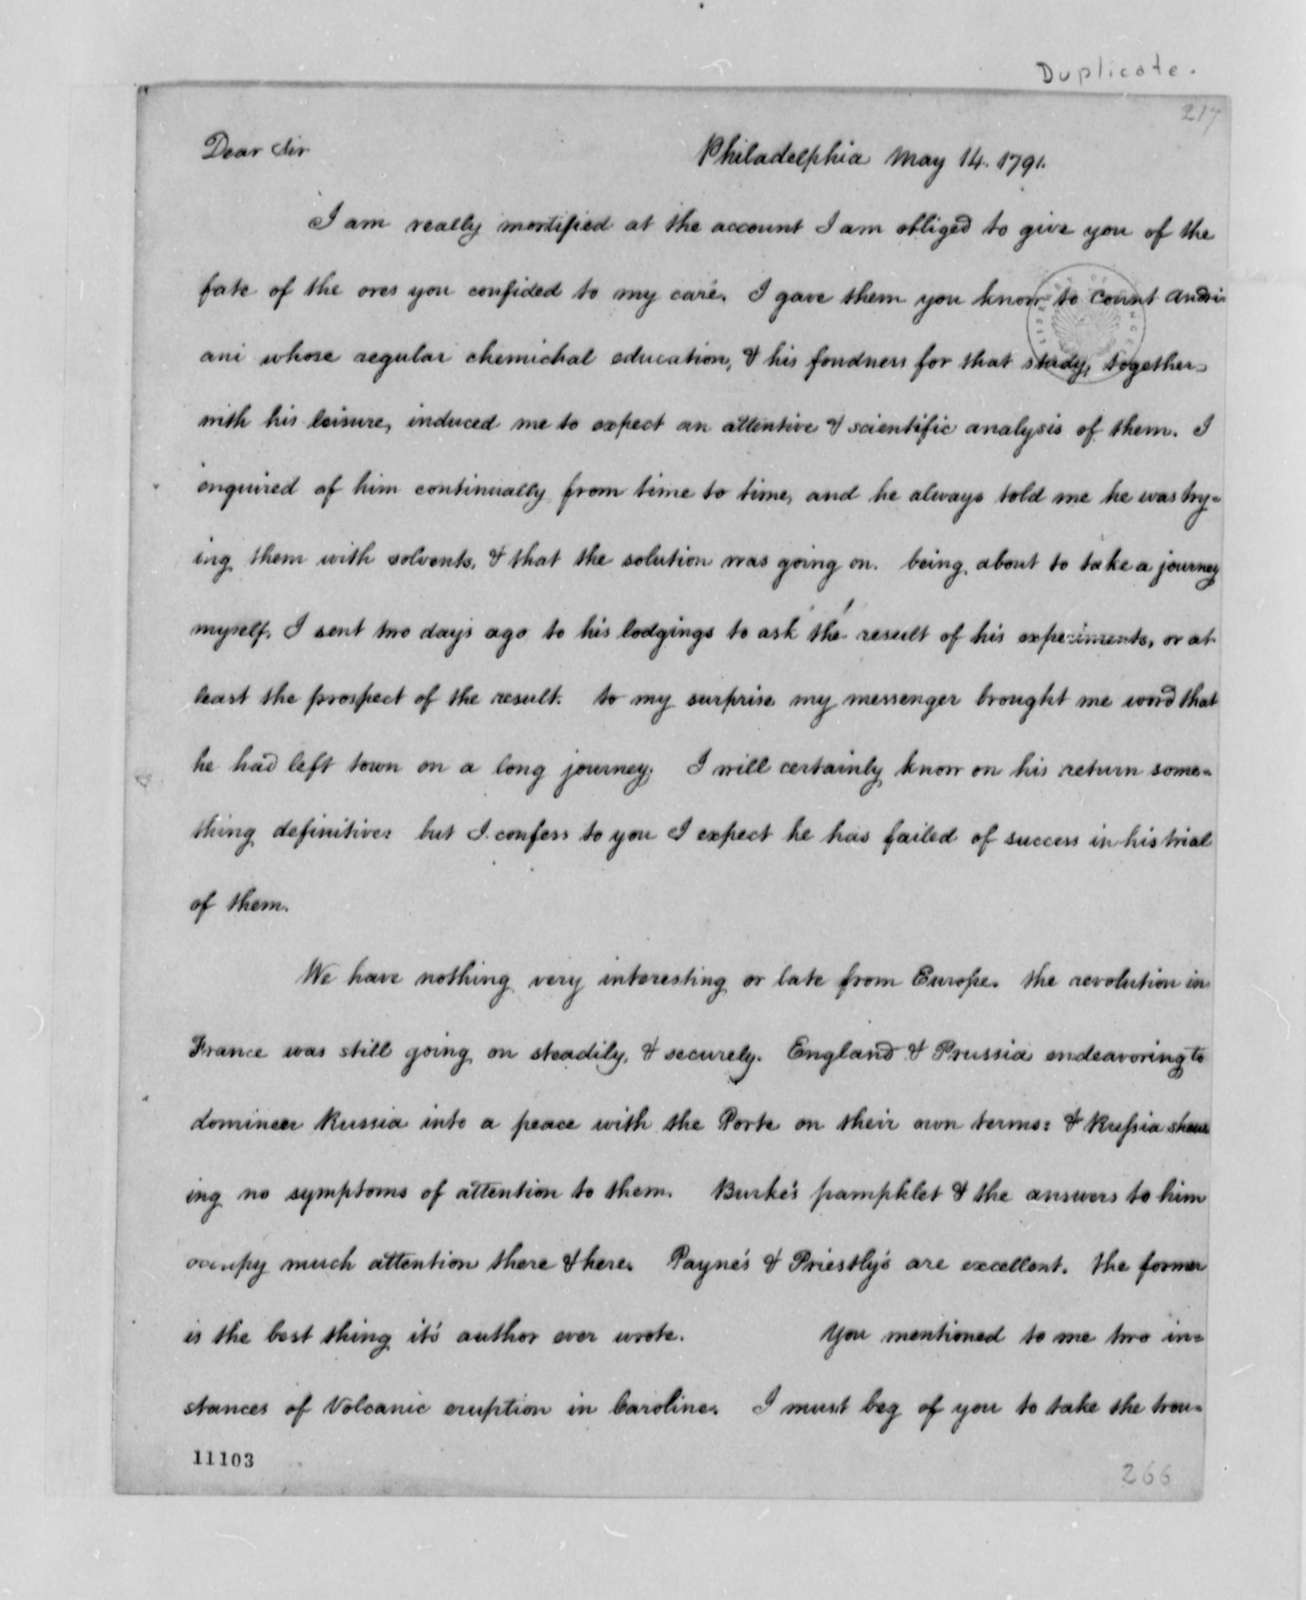 Thomas Jefferson to Thomas Sumter, May 14, 1791, with Copy